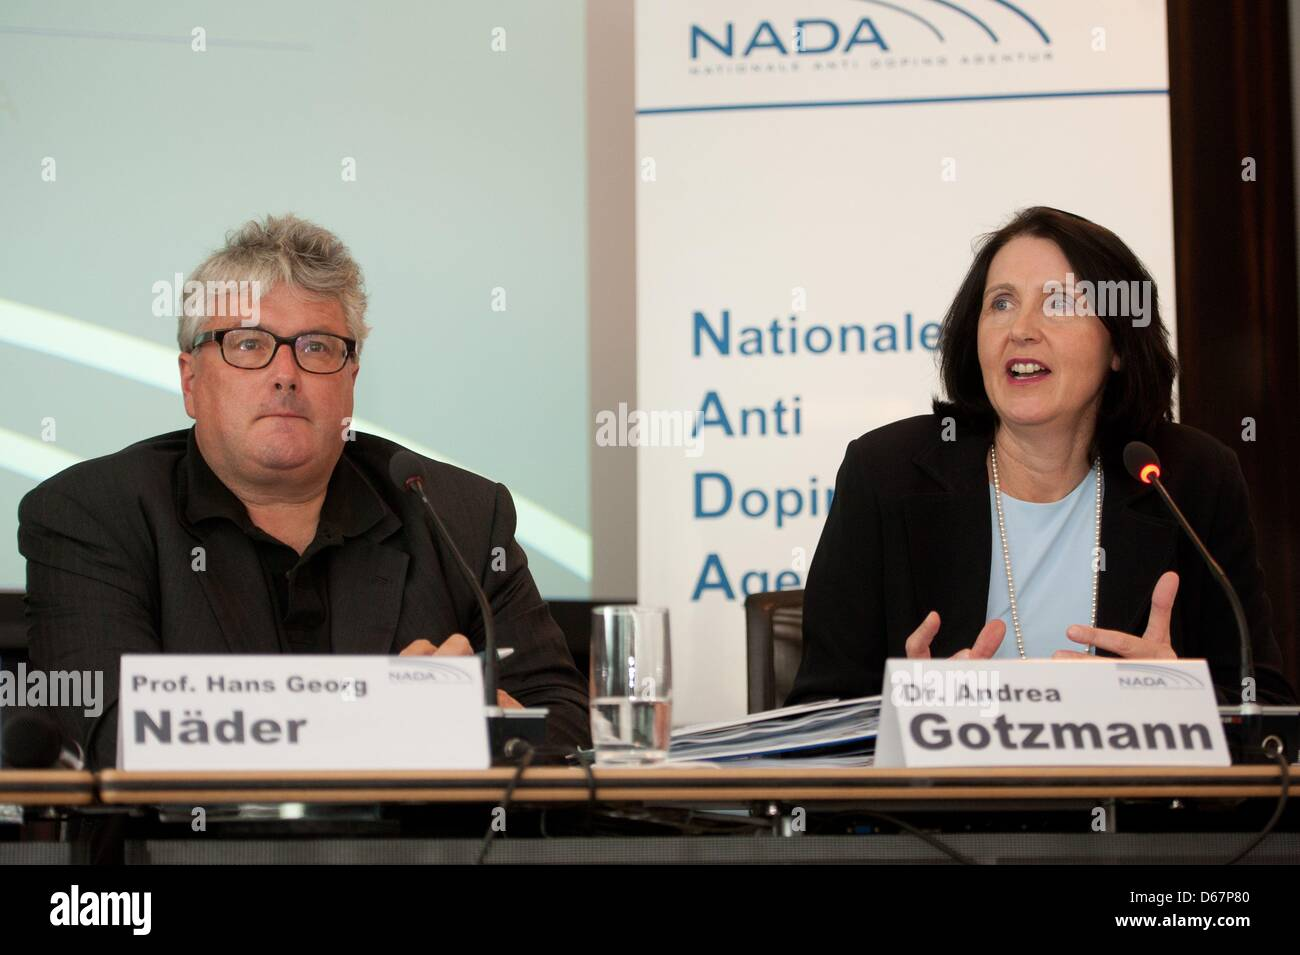 CEOof NADAAndrea Gotzmann talks next to chairman of the supervisory board of NADA Hans Georg Naeder during the Stock Photo